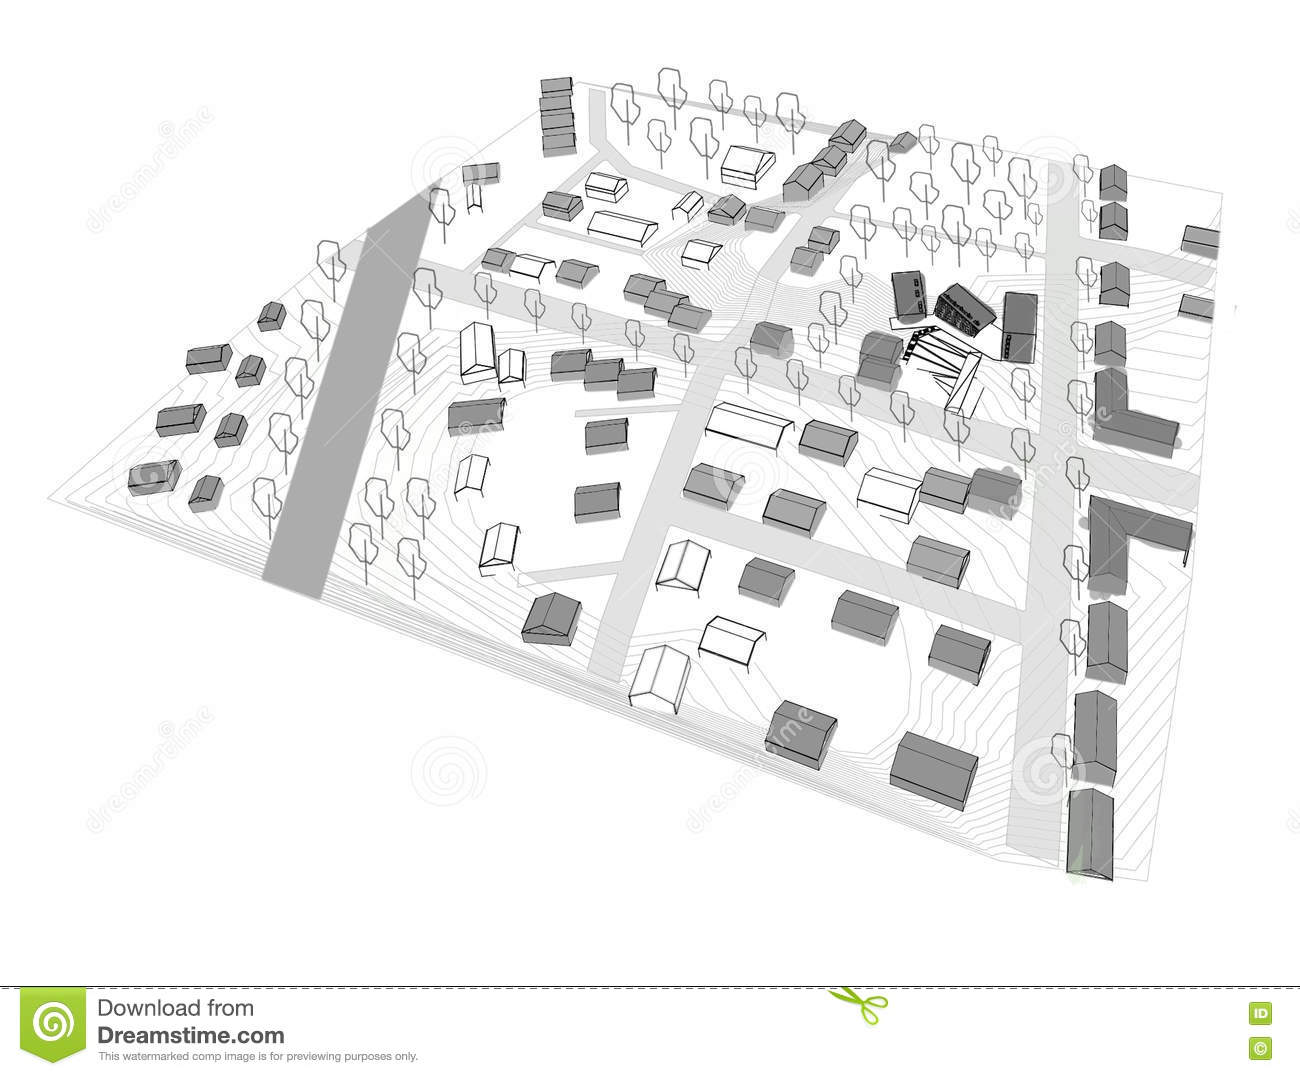 Small city urban spaces in 3d model stock illustration image 72856272 - Small urban spaces image ...